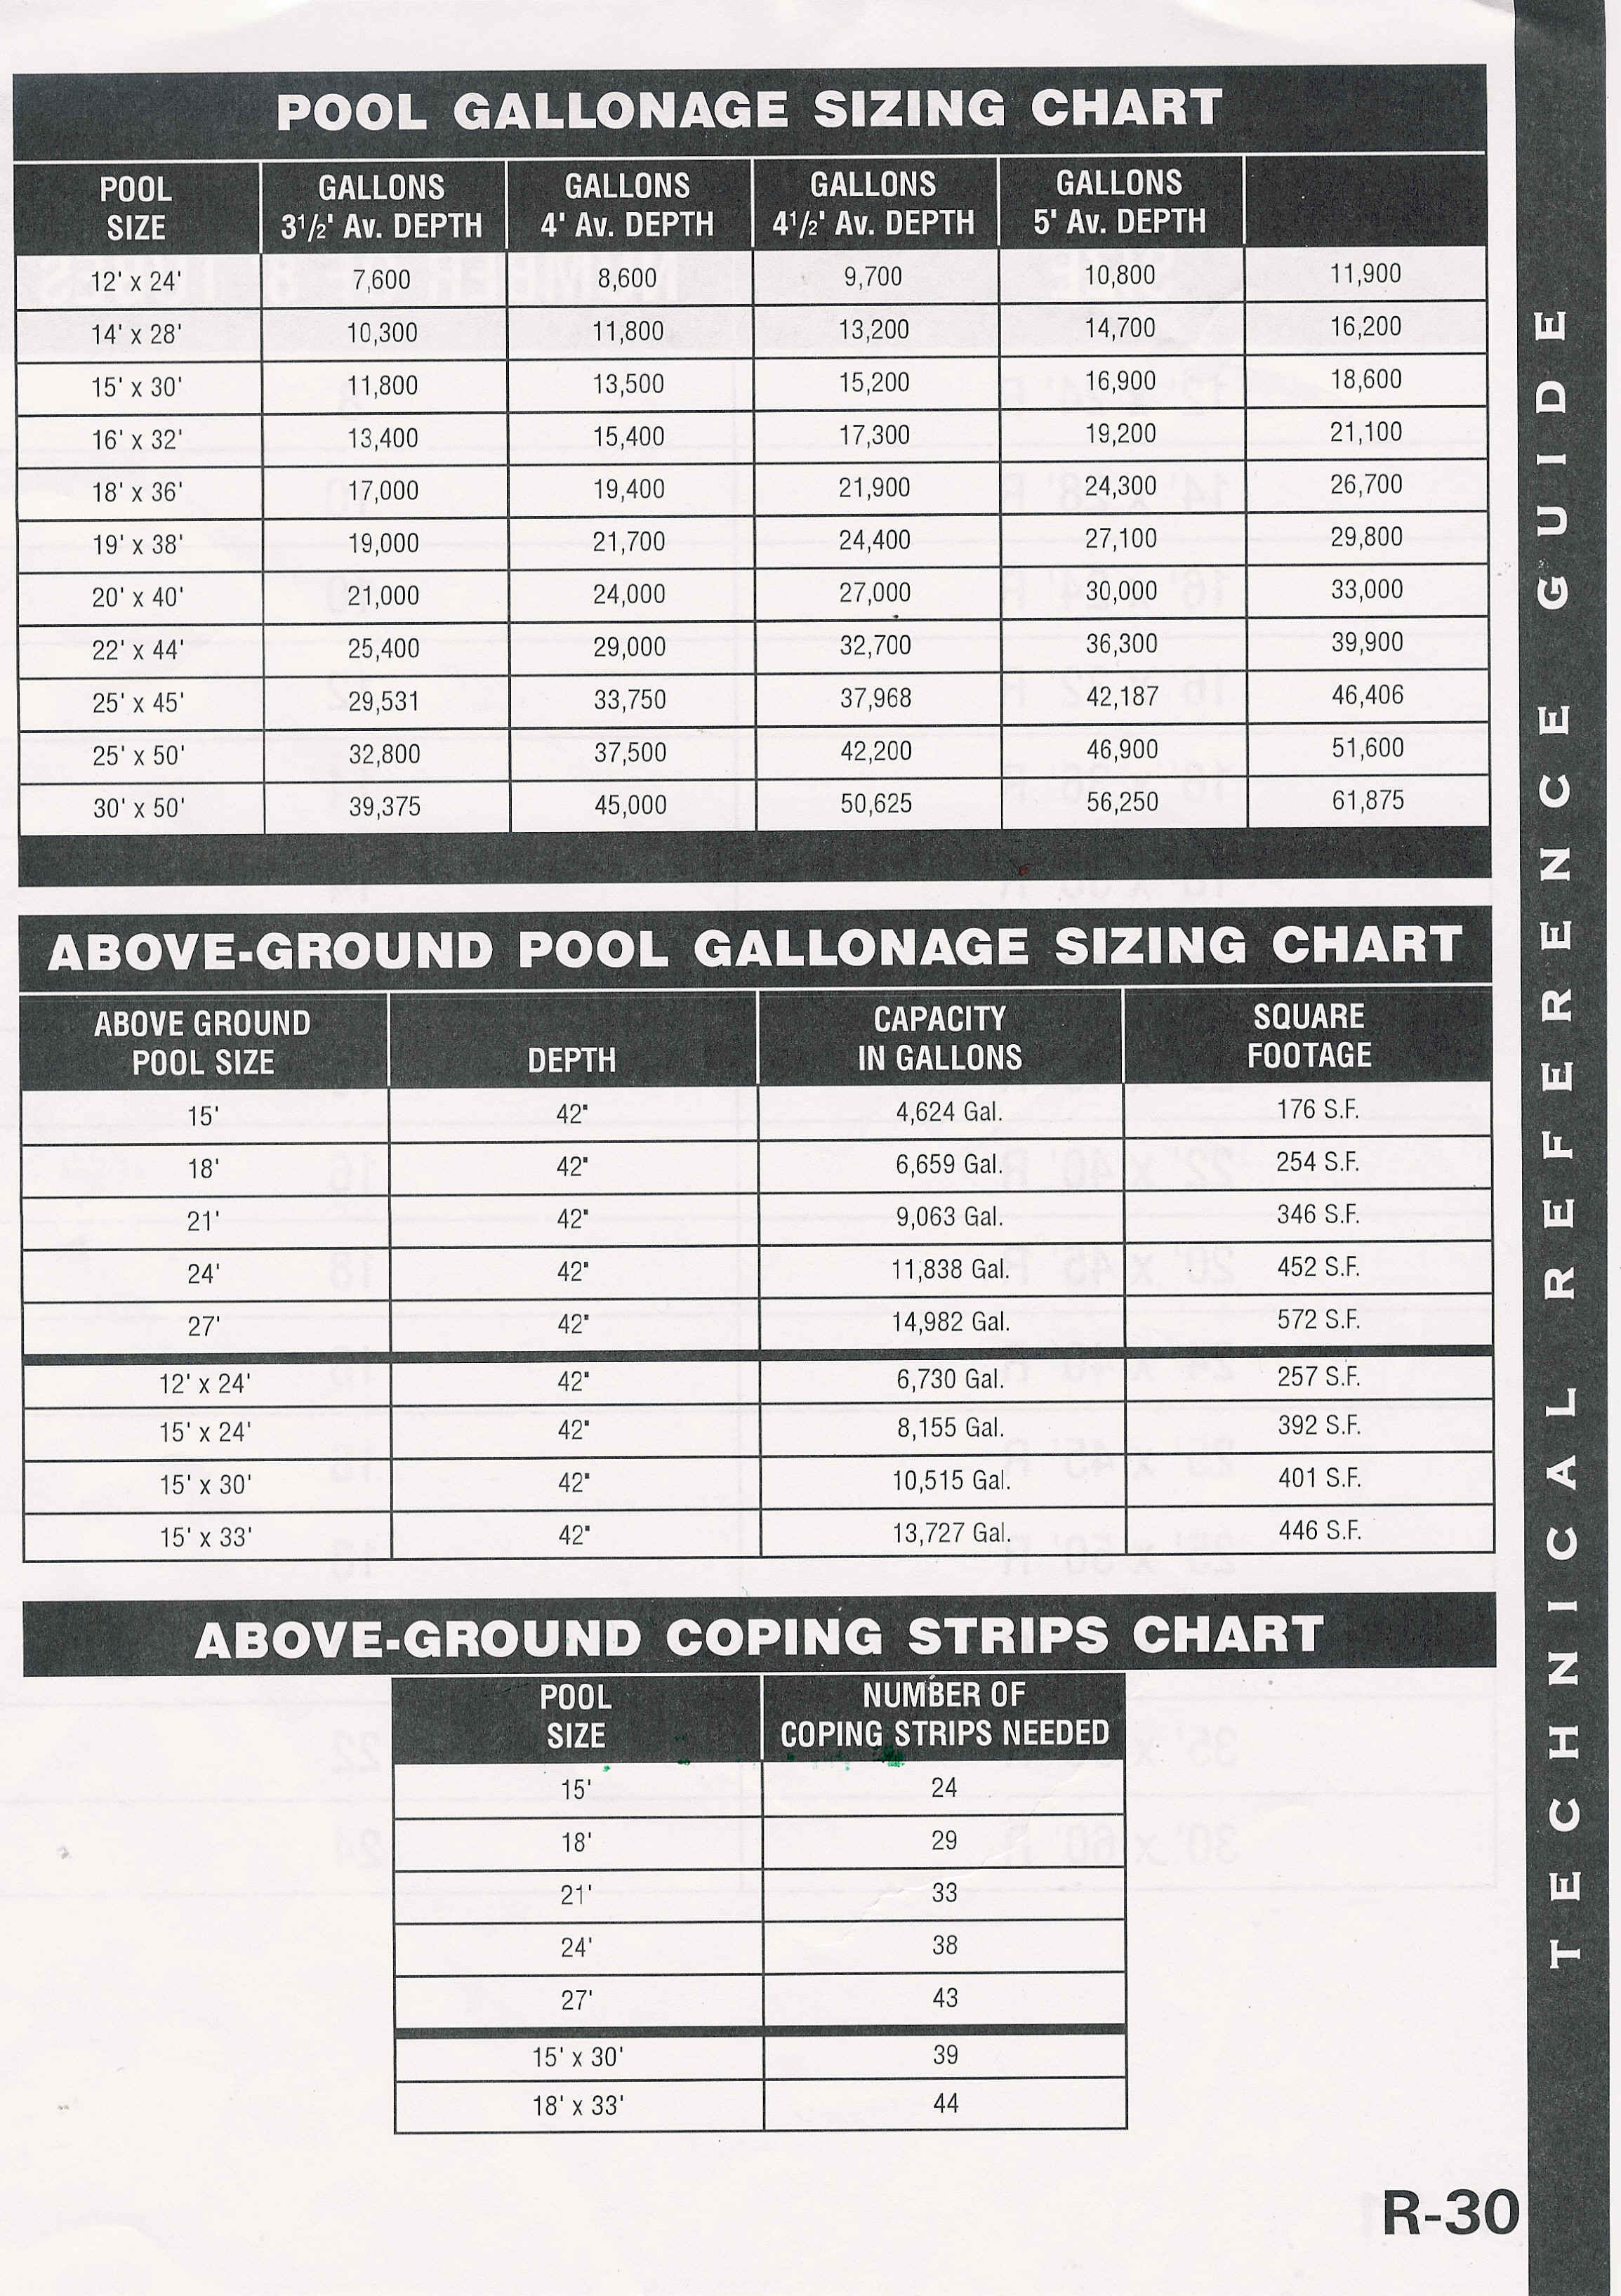 pool gallons sizing chart